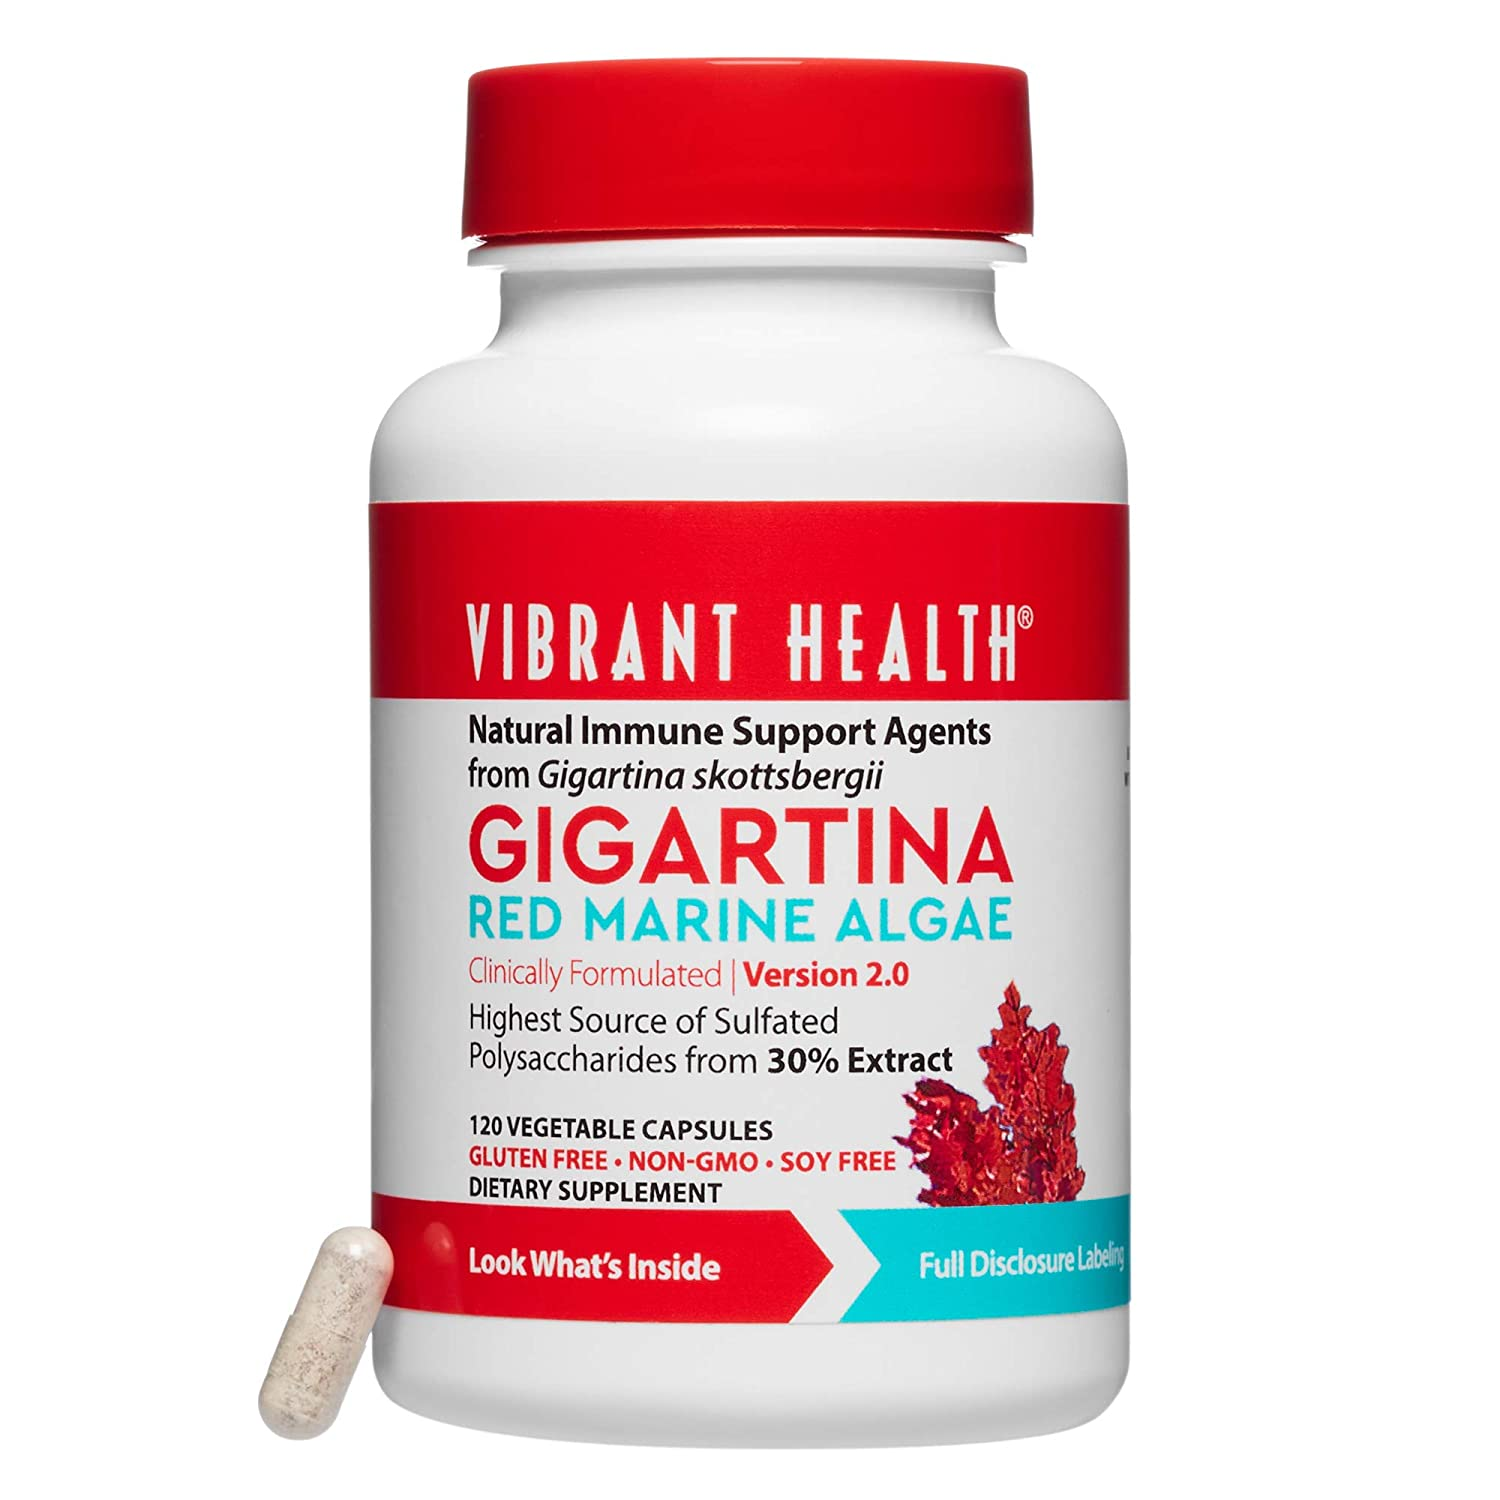 Vibrant Health – Gigartina Red Marine Algae, Natural Support for Immune Function and Healing, Gluten Free, Dairy Free, Non-GMO, Vegetarian, 120 Count FFP